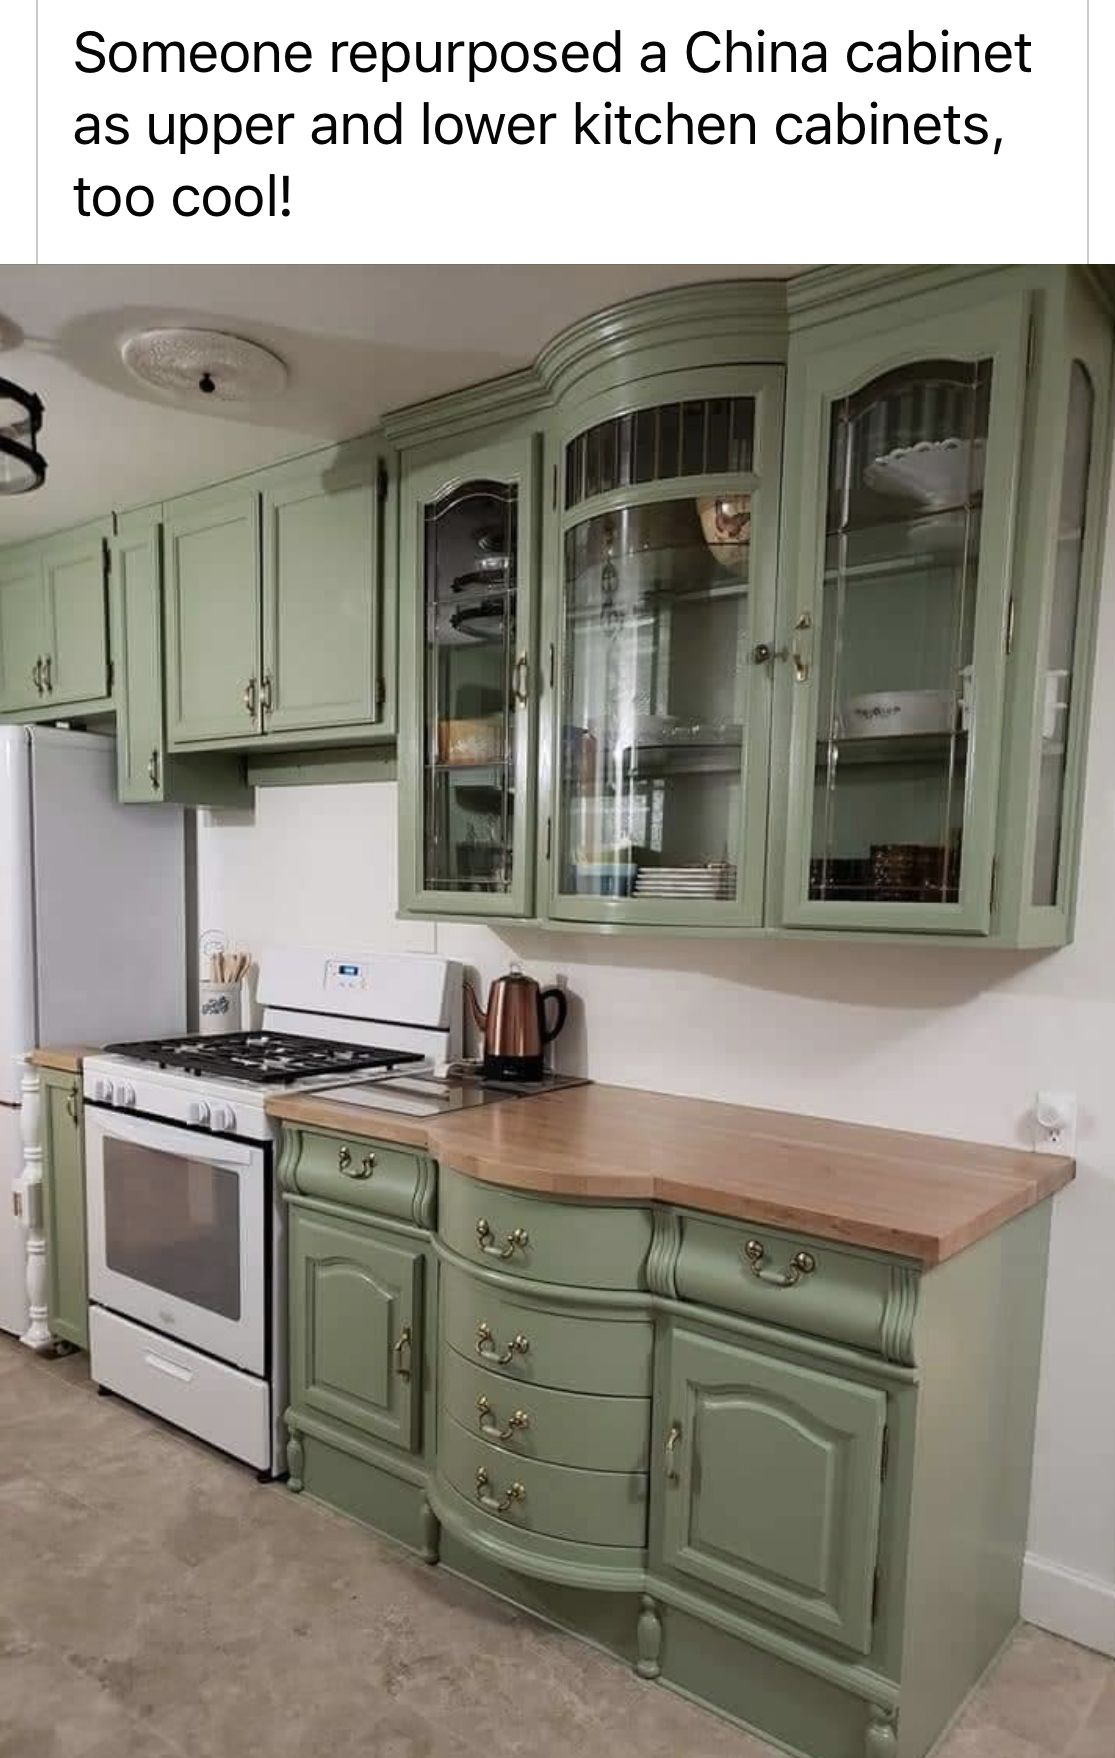 Pin By Dar Mounkes On Share With Tanis In 2020 Upper Kitchen Cabinets Repurposed Kitchen Kitchen Cabinets